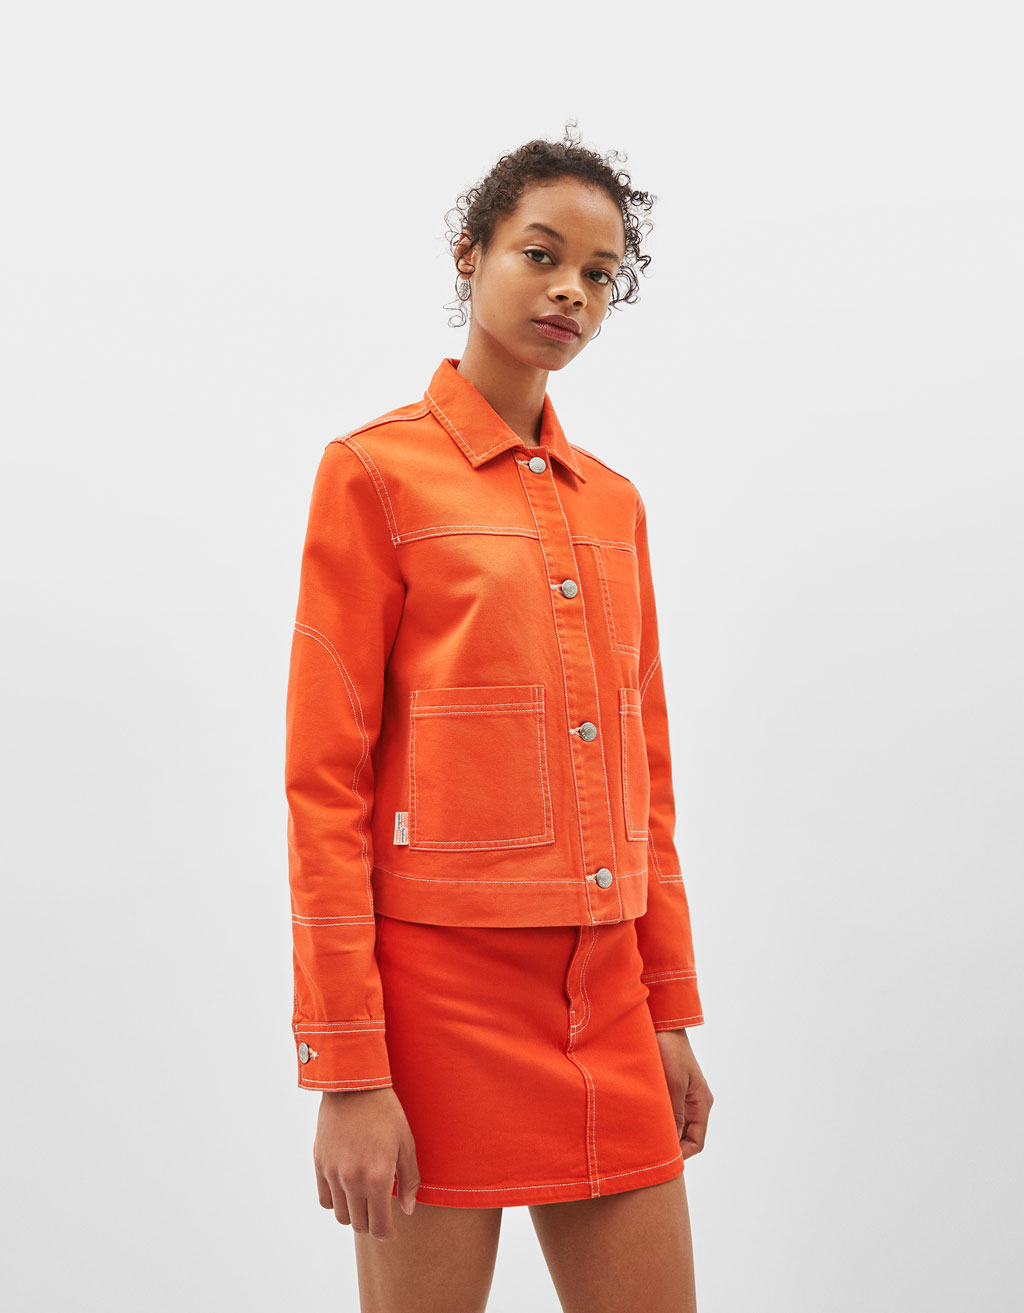 Utility jacket with contrast seams